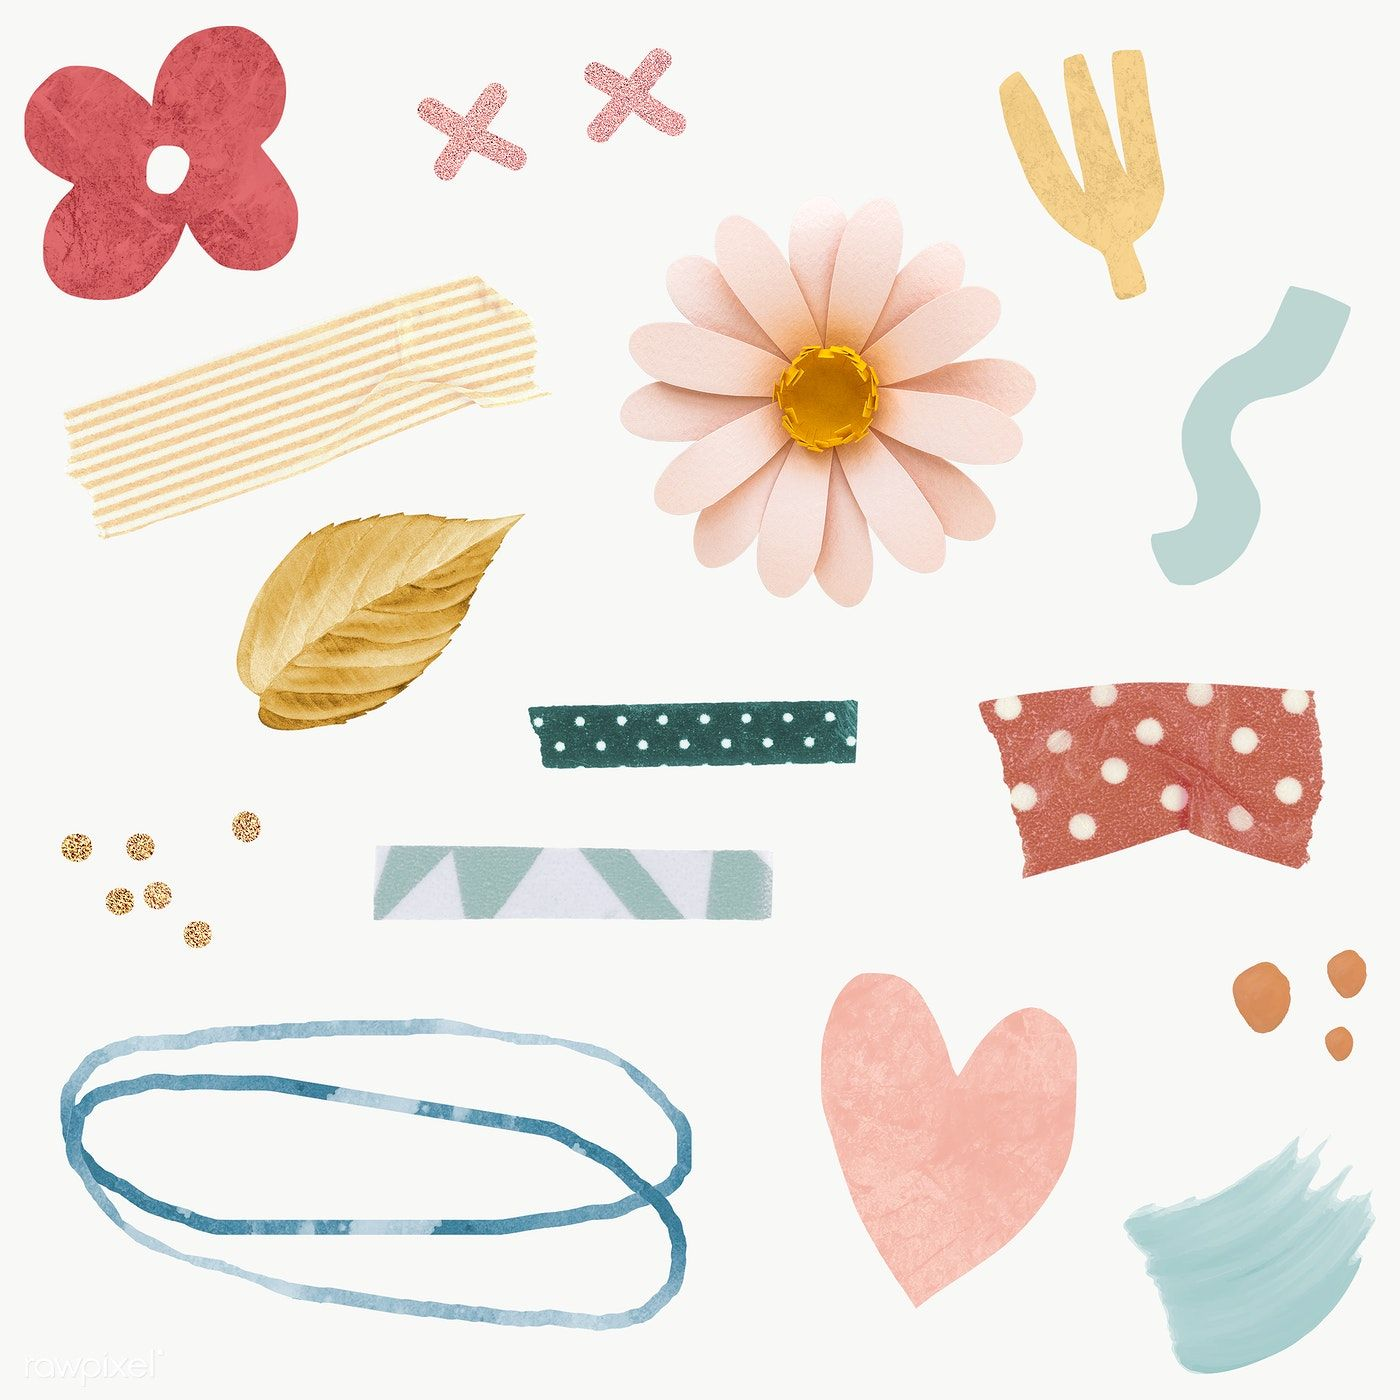 Floral And Washi Tape Stickers Pack Transparent Png Premium Image By Rawpixel Com Ningzk V Free Hand Drawing Floral Border Design Stickers